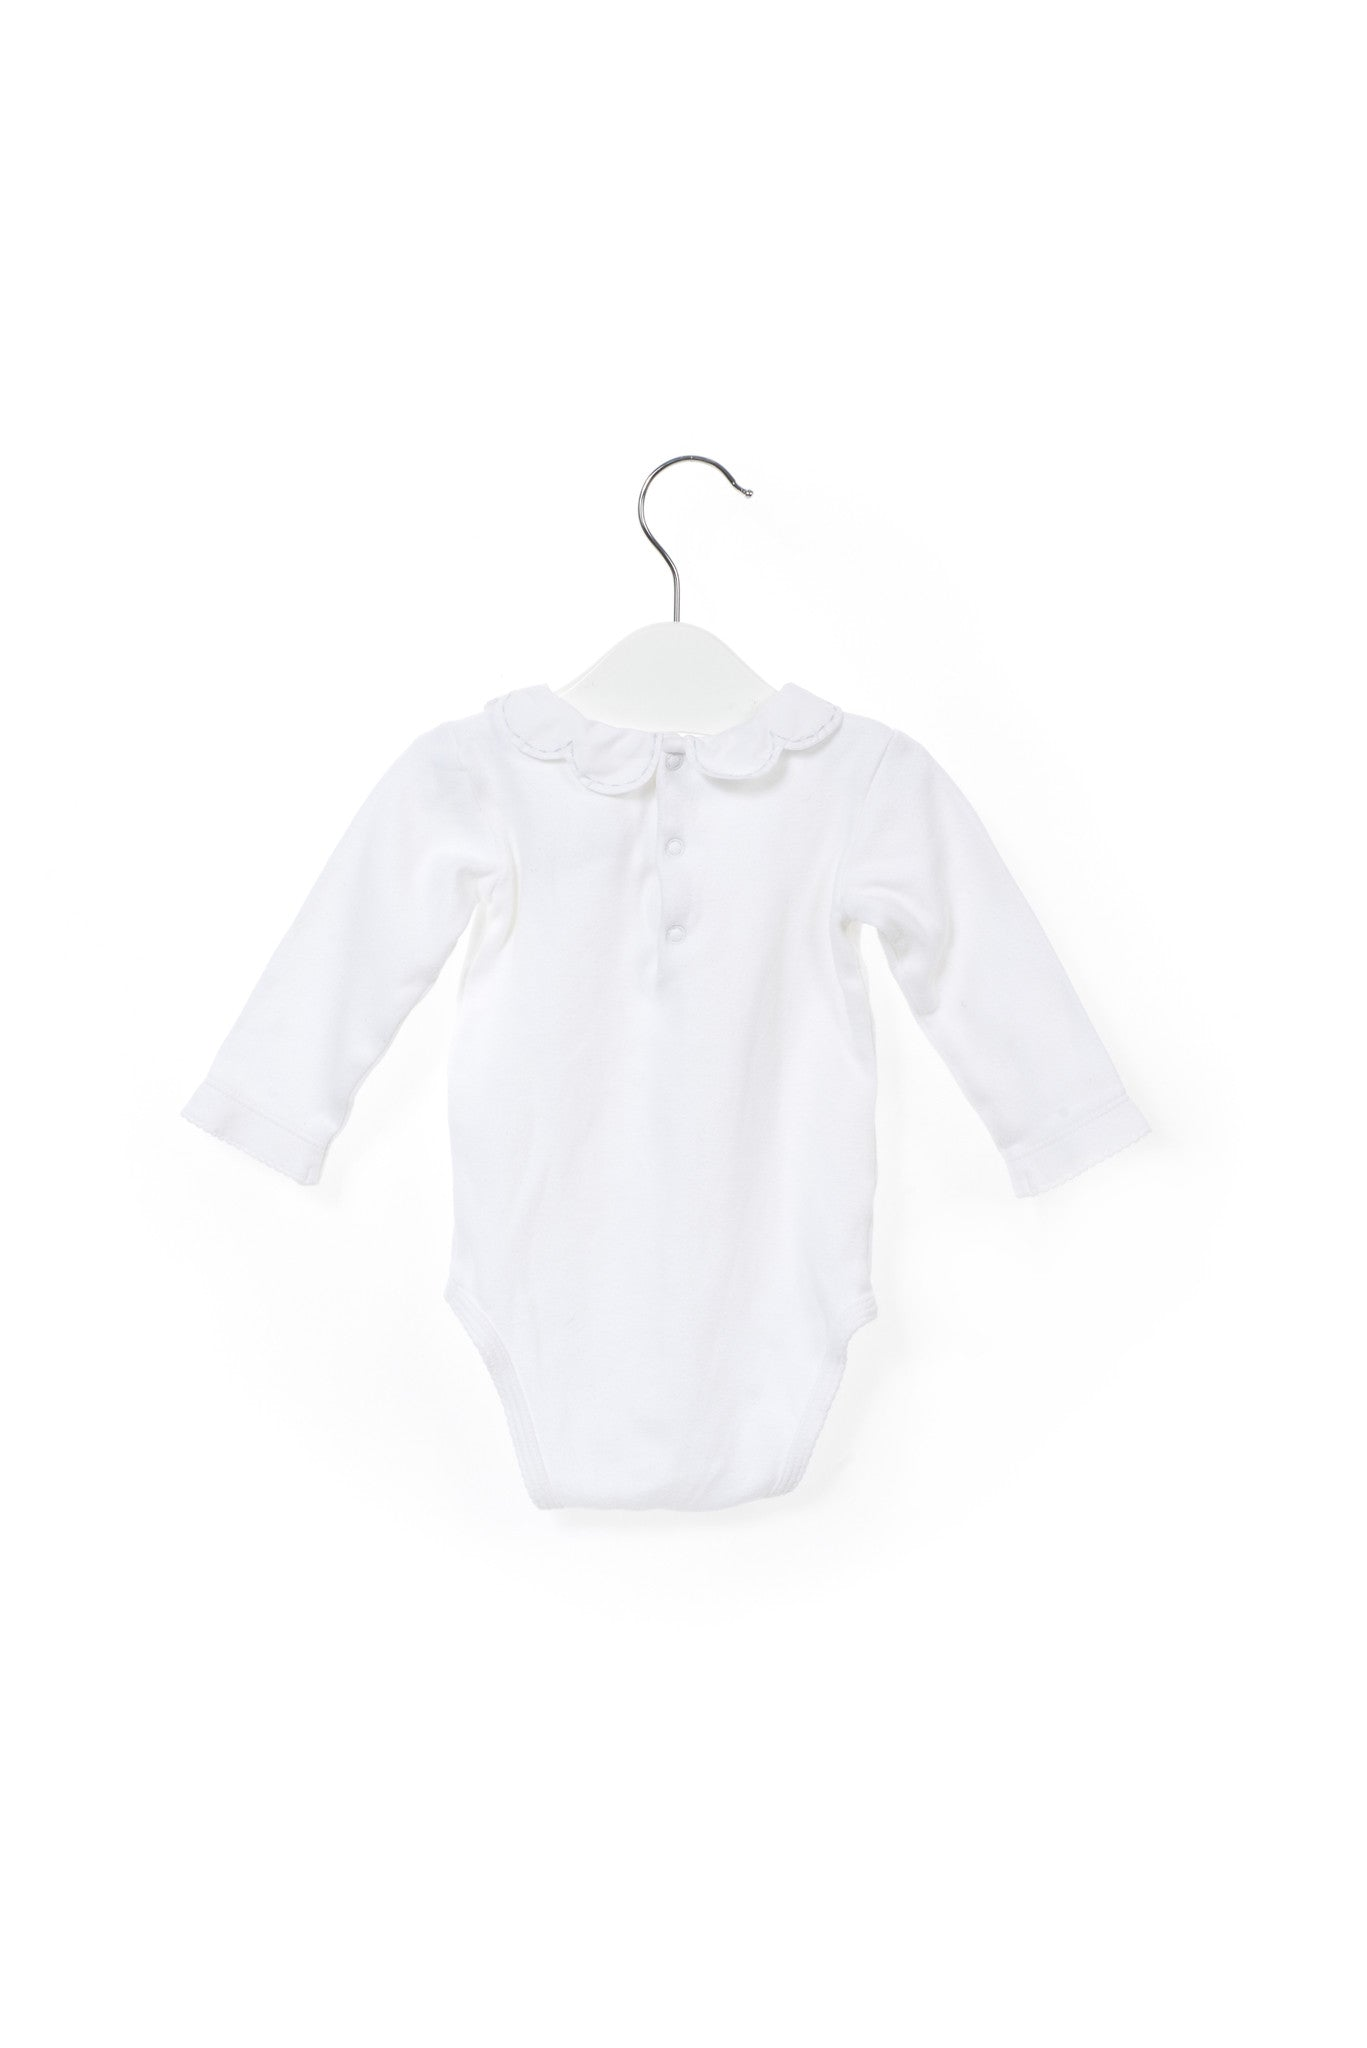 Bodysuit 3-6M, Jacadi at Retykle - Online Baby & Kids Clothing Up to 90% Off